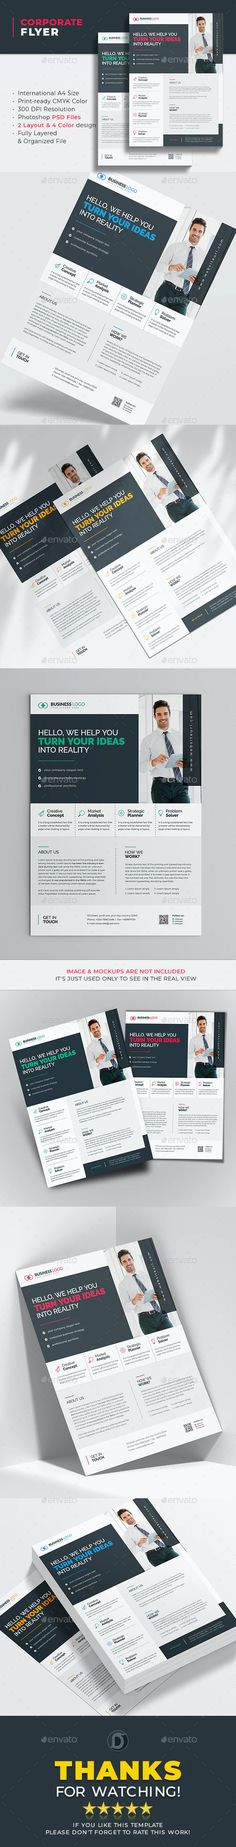 Corporate Flyer Templates by didargds | GraphicRiver